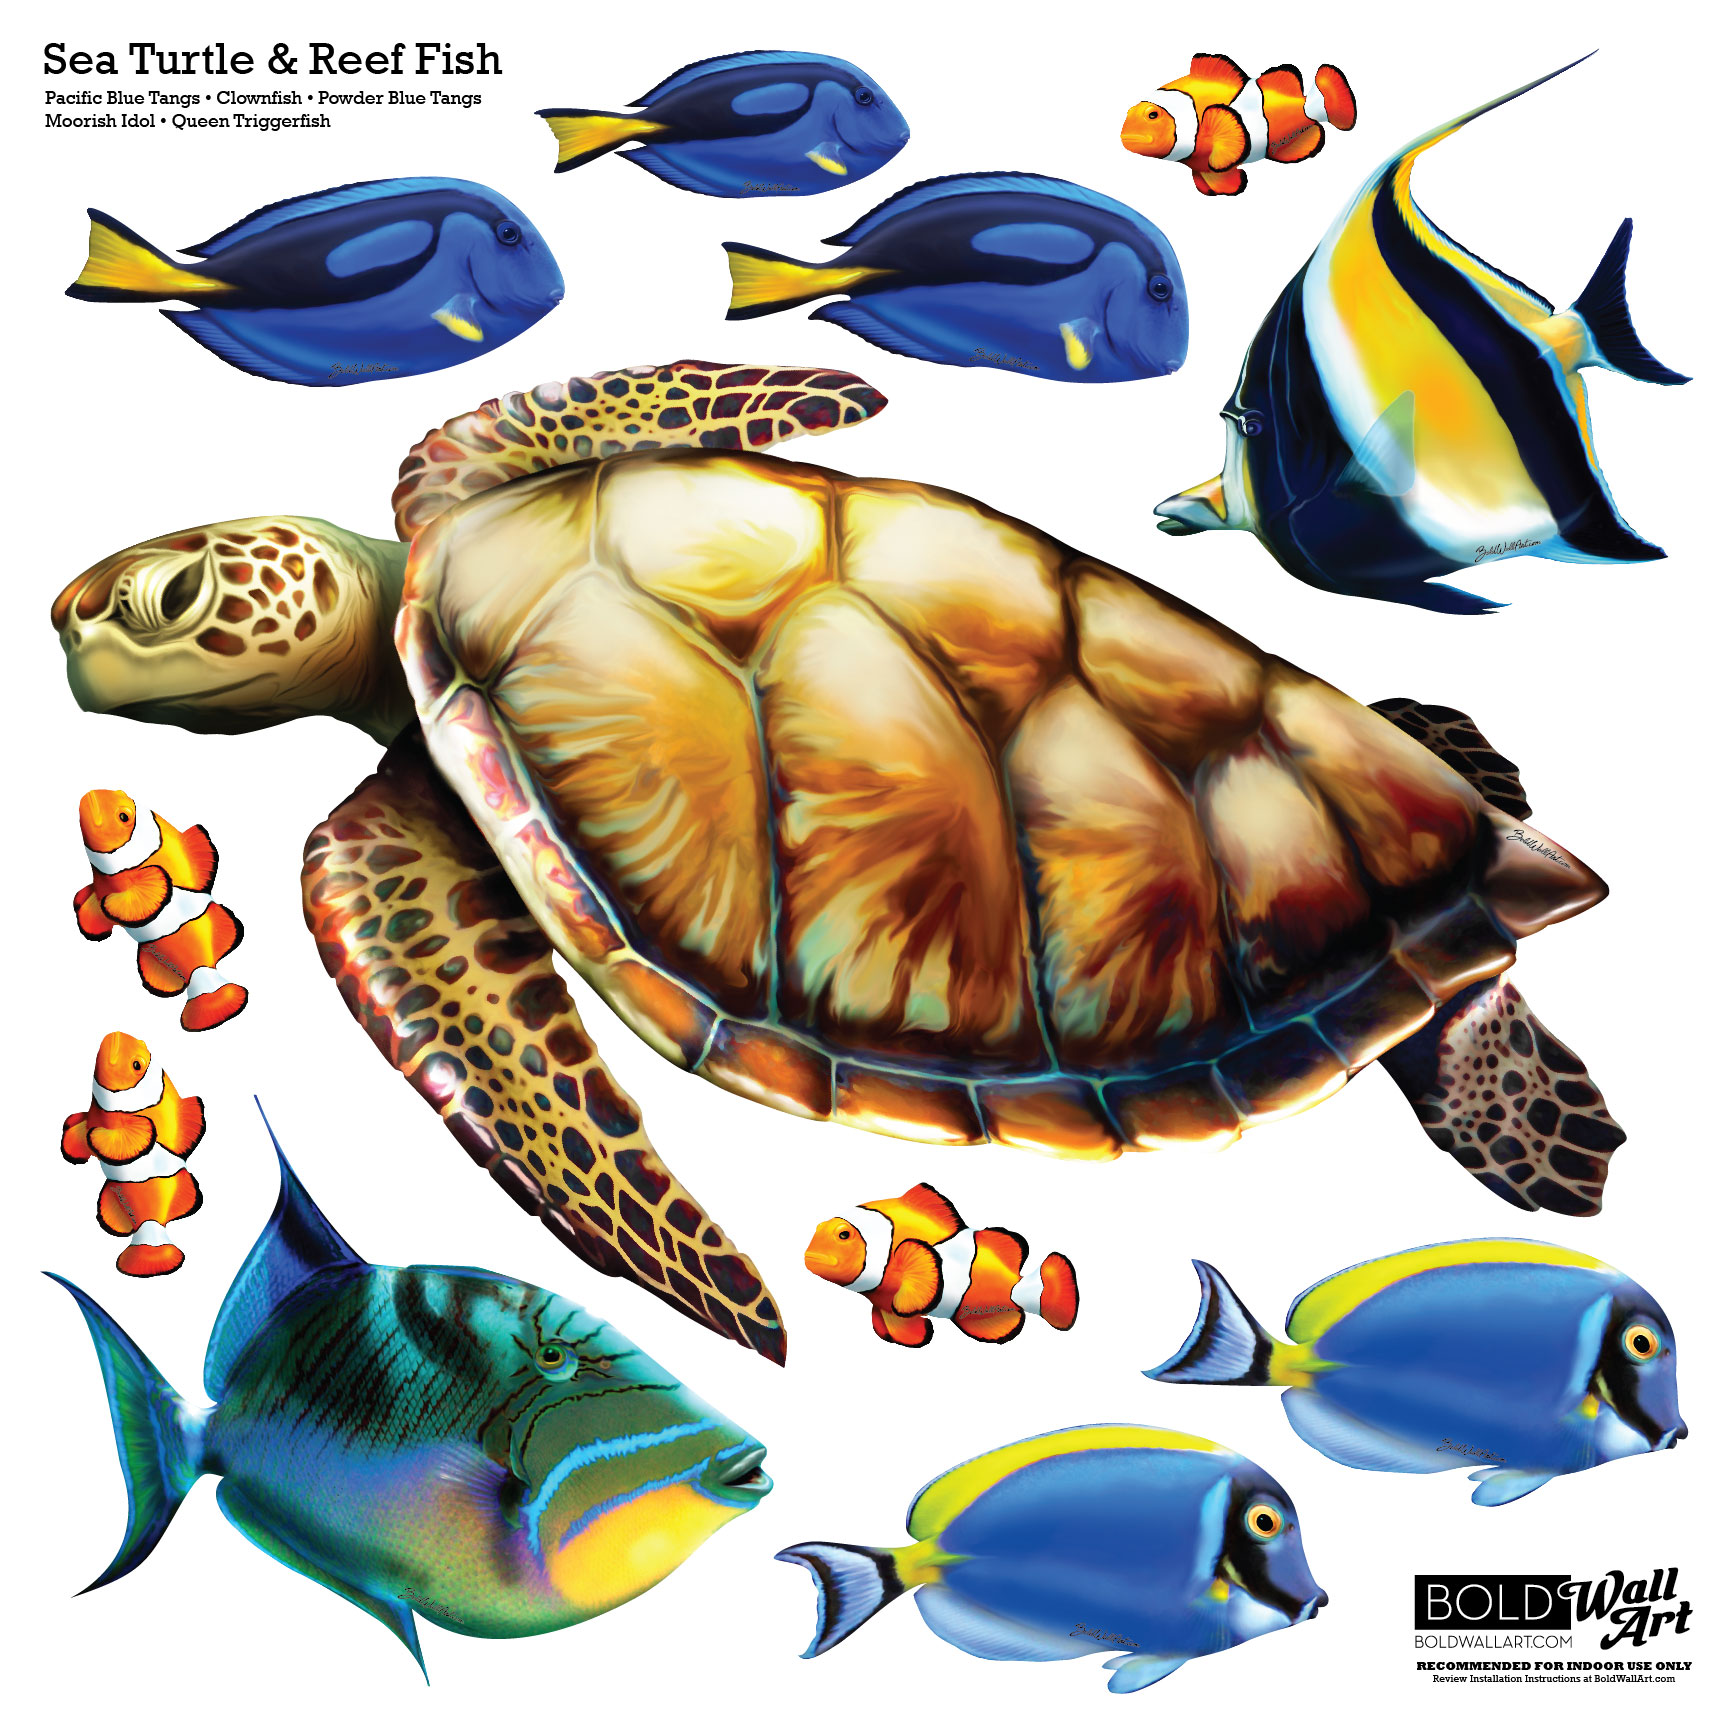 Sea turtle and reef fish wall decal set bold wall art for Turtle fish games